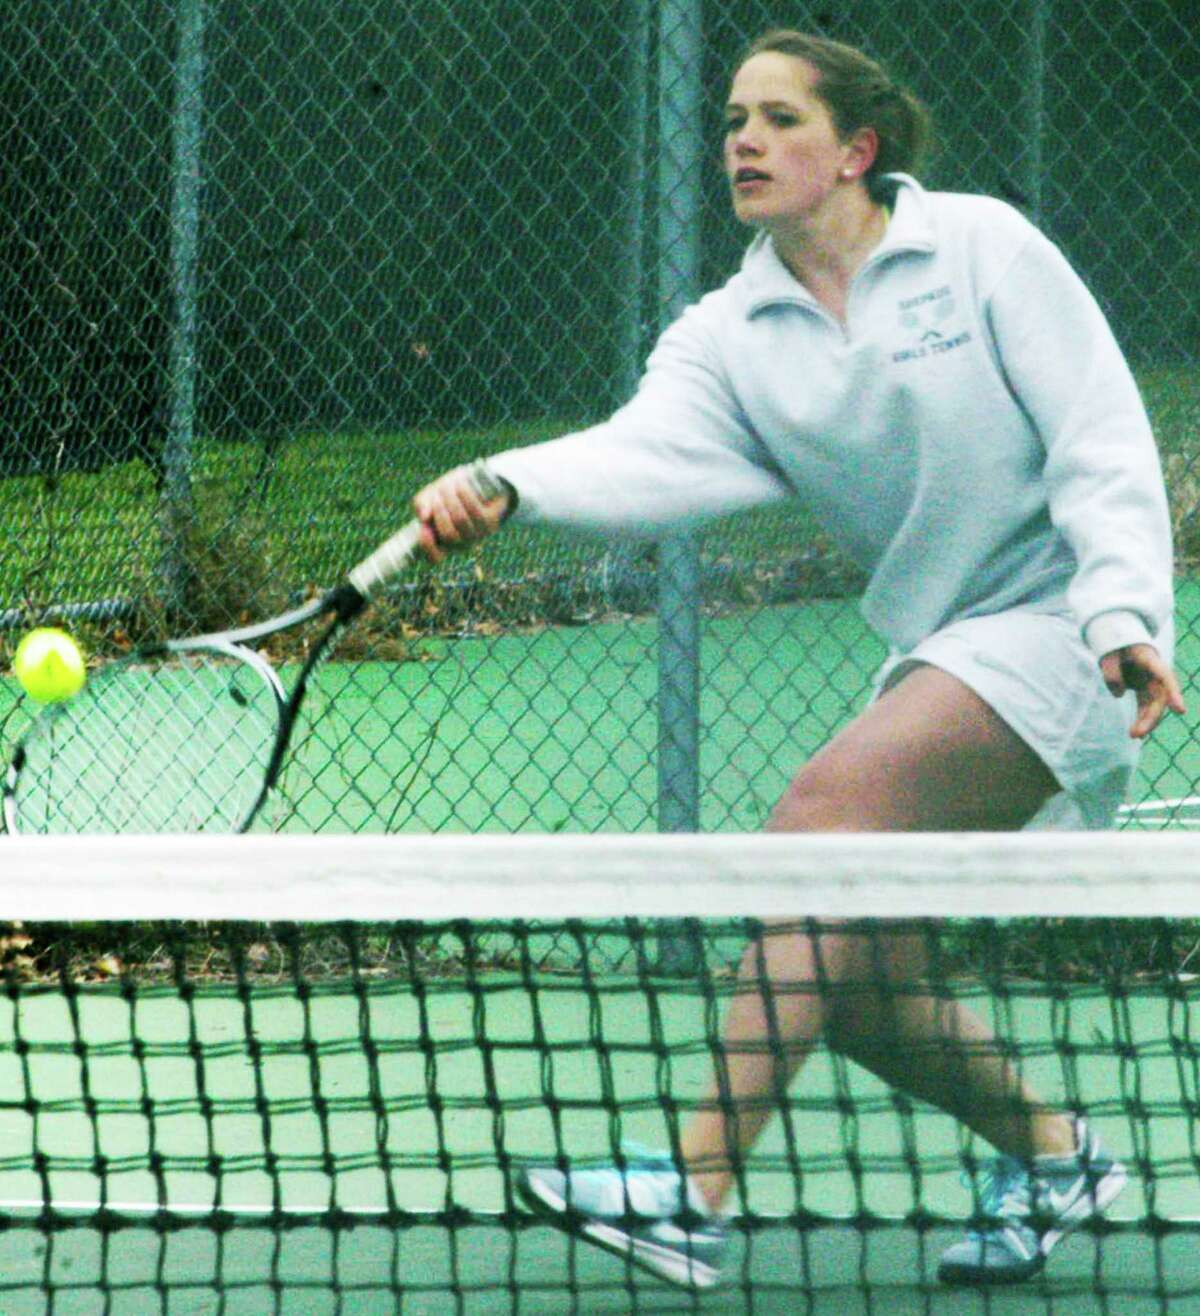 Spartan junior Haley Pesce demonstrates her touch with a finessed forehand during her singles victory as Shepaug Valley School girls' tennis whitewashes Lewis Mills, 7-0, April 24, 2015 on the Shepaug courts in Washington.